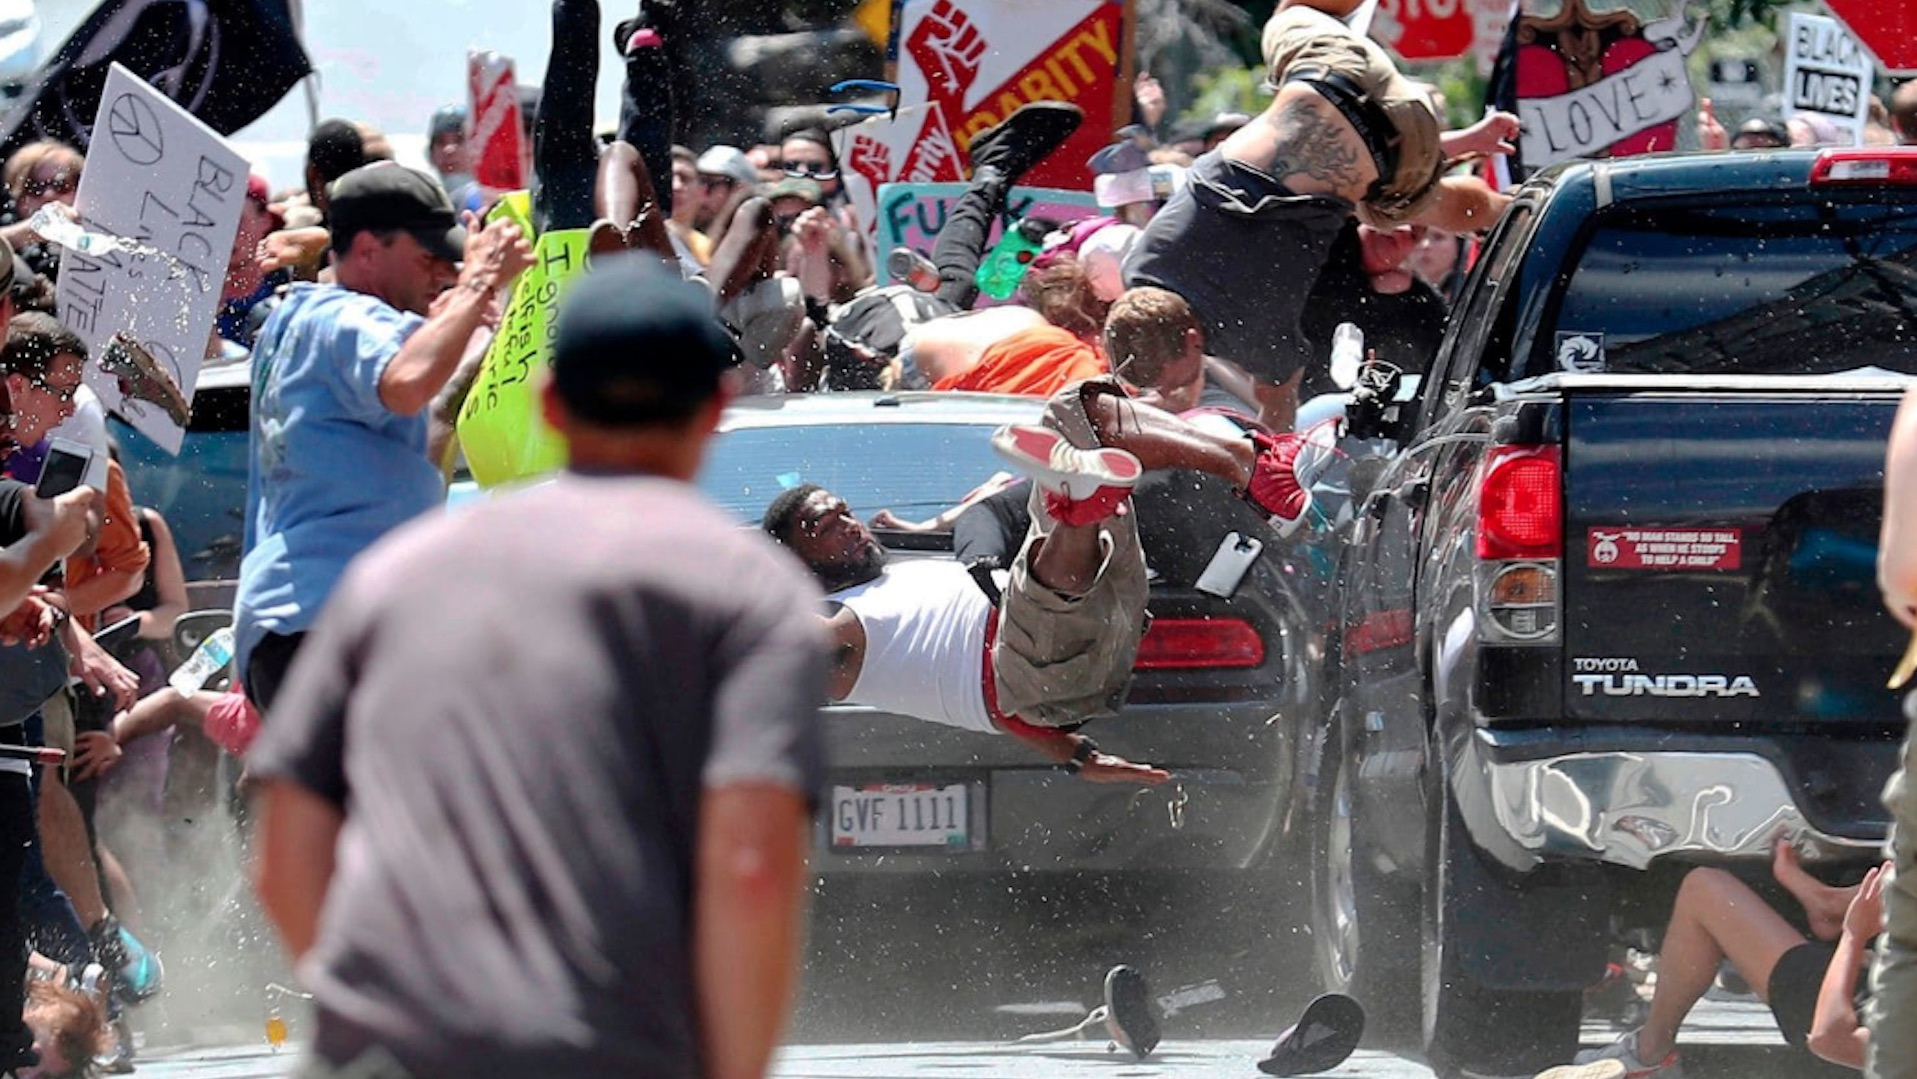 Alleged driver of car that plowed into Charlottesville crowd was a Nazi sympathizer, former teacher says